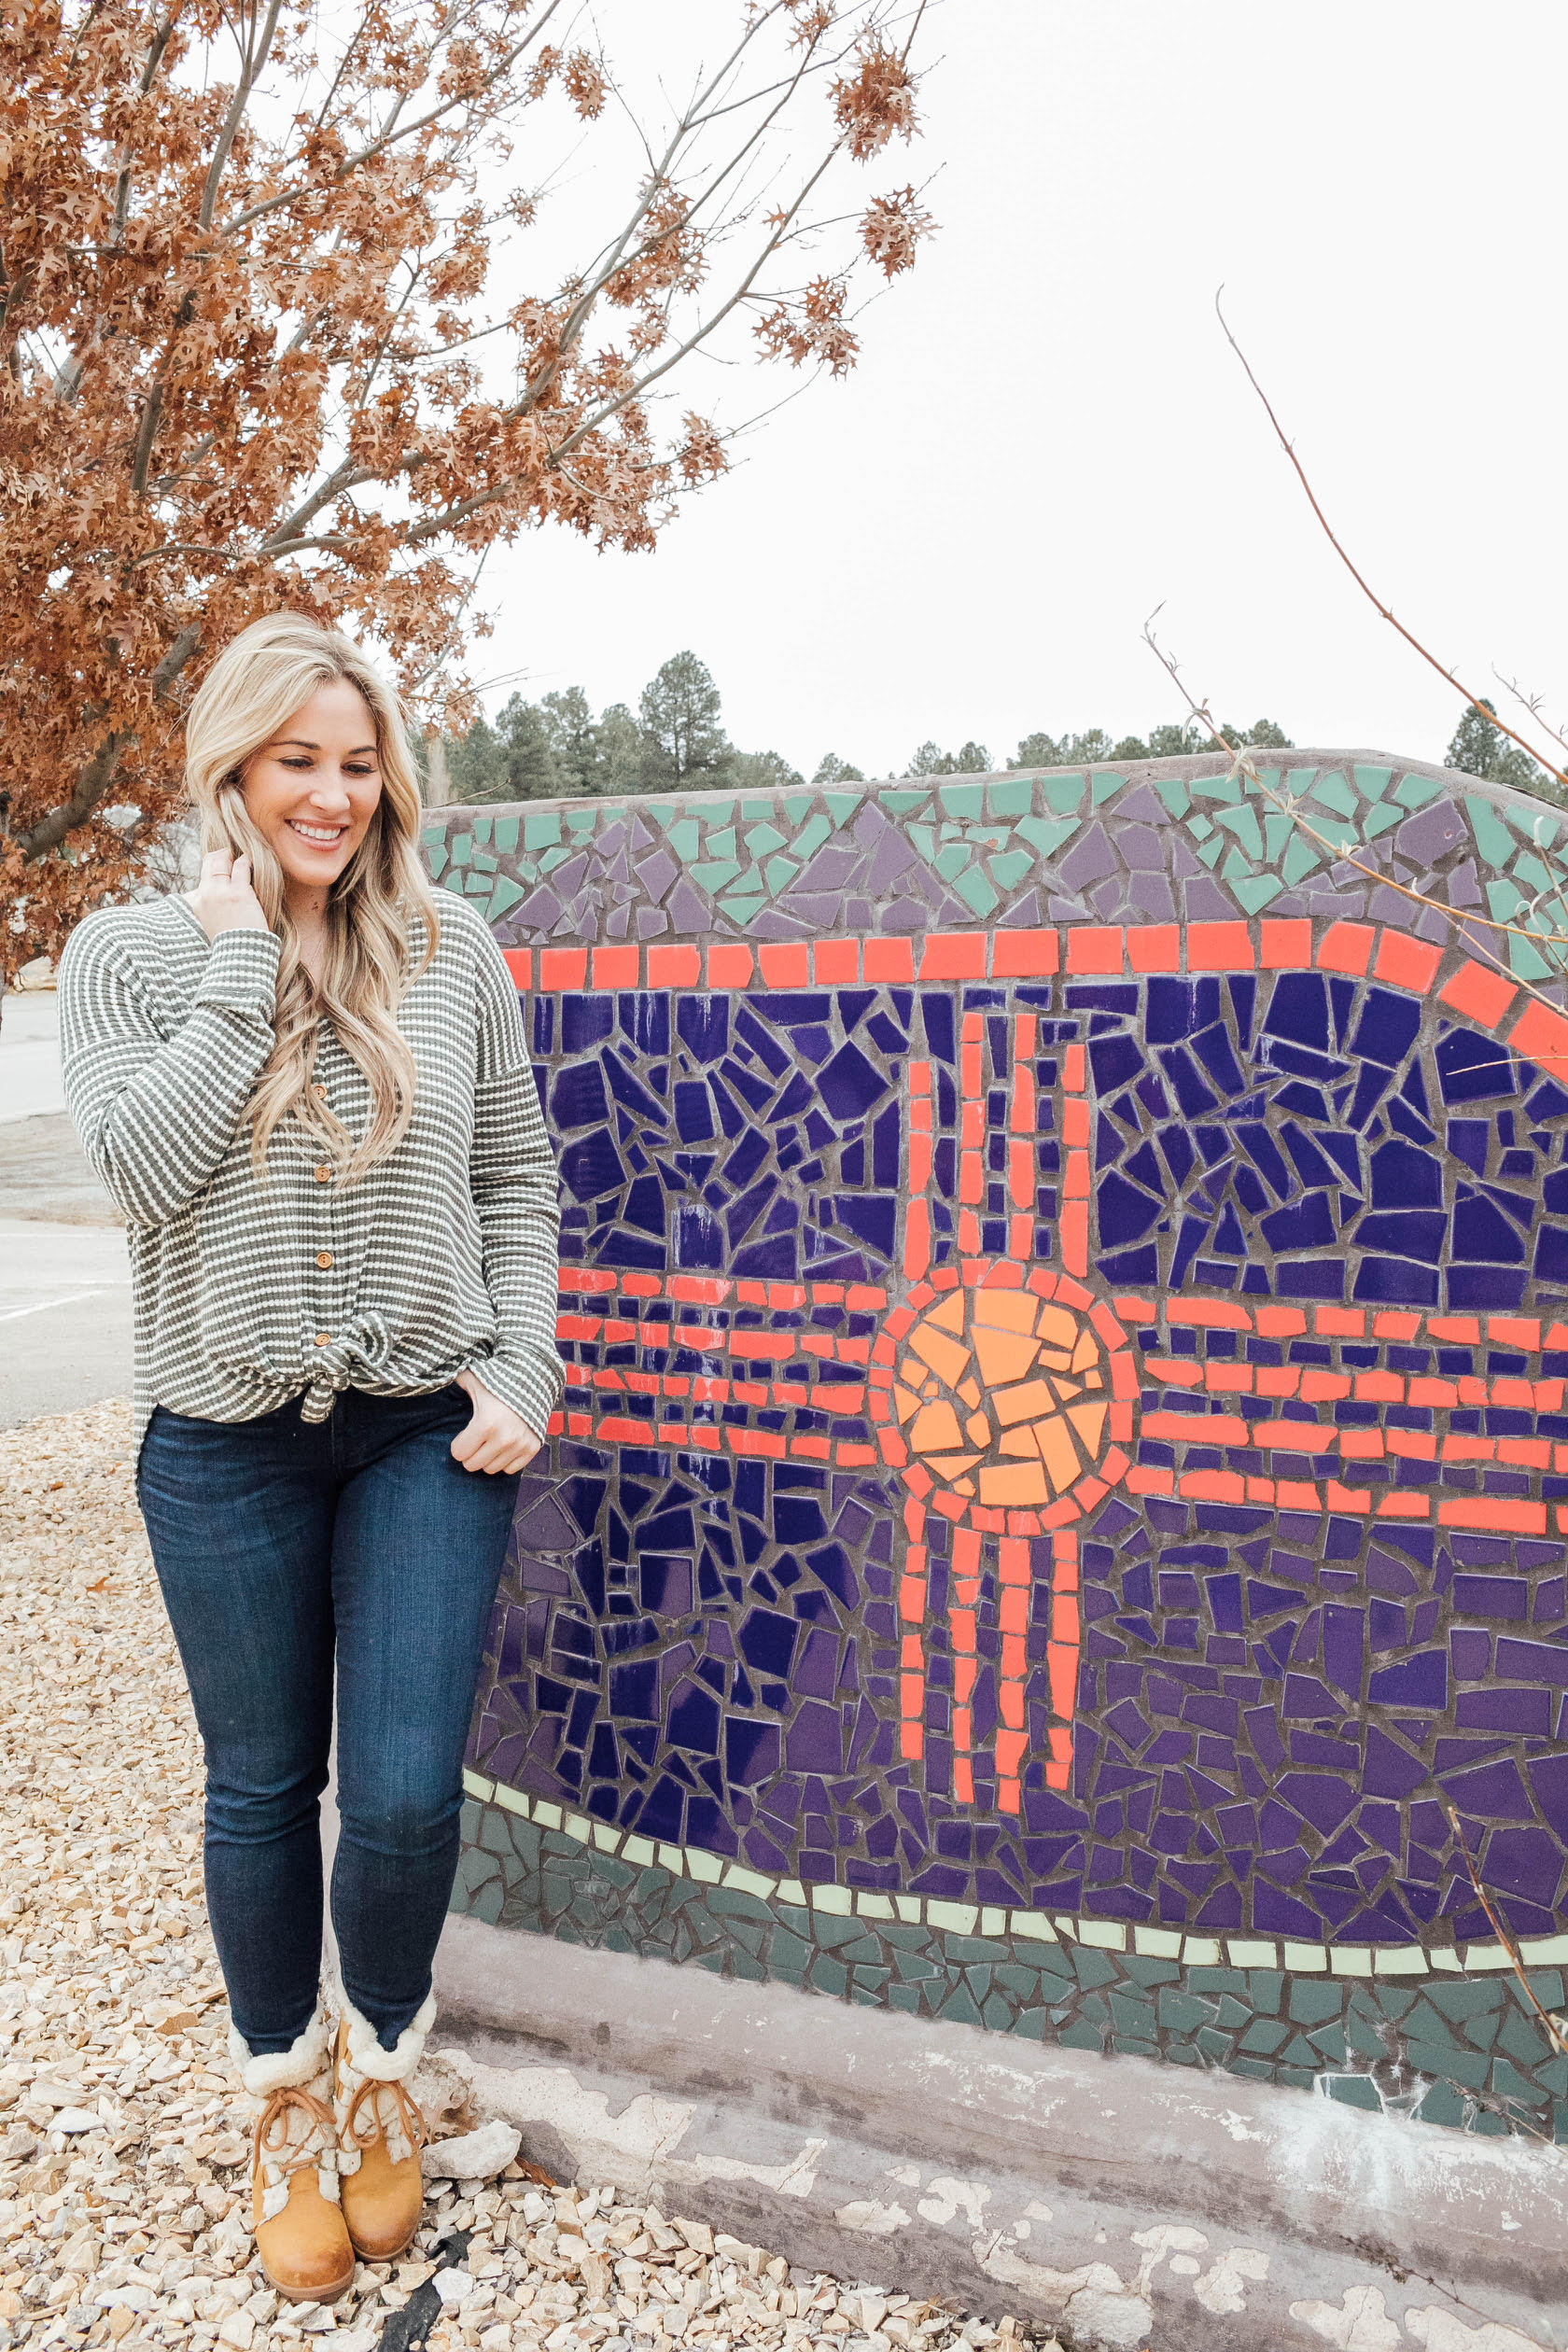 Cute winter sherpa boots styled by top US fashion blog, Walking in Memphis in High Heels: image of a woman wearing a Grace and Lace thermal top, Zappos skinny jeans, Patagonia vest, Sorel sherpa boots and Grace and Lace knit pom beanie